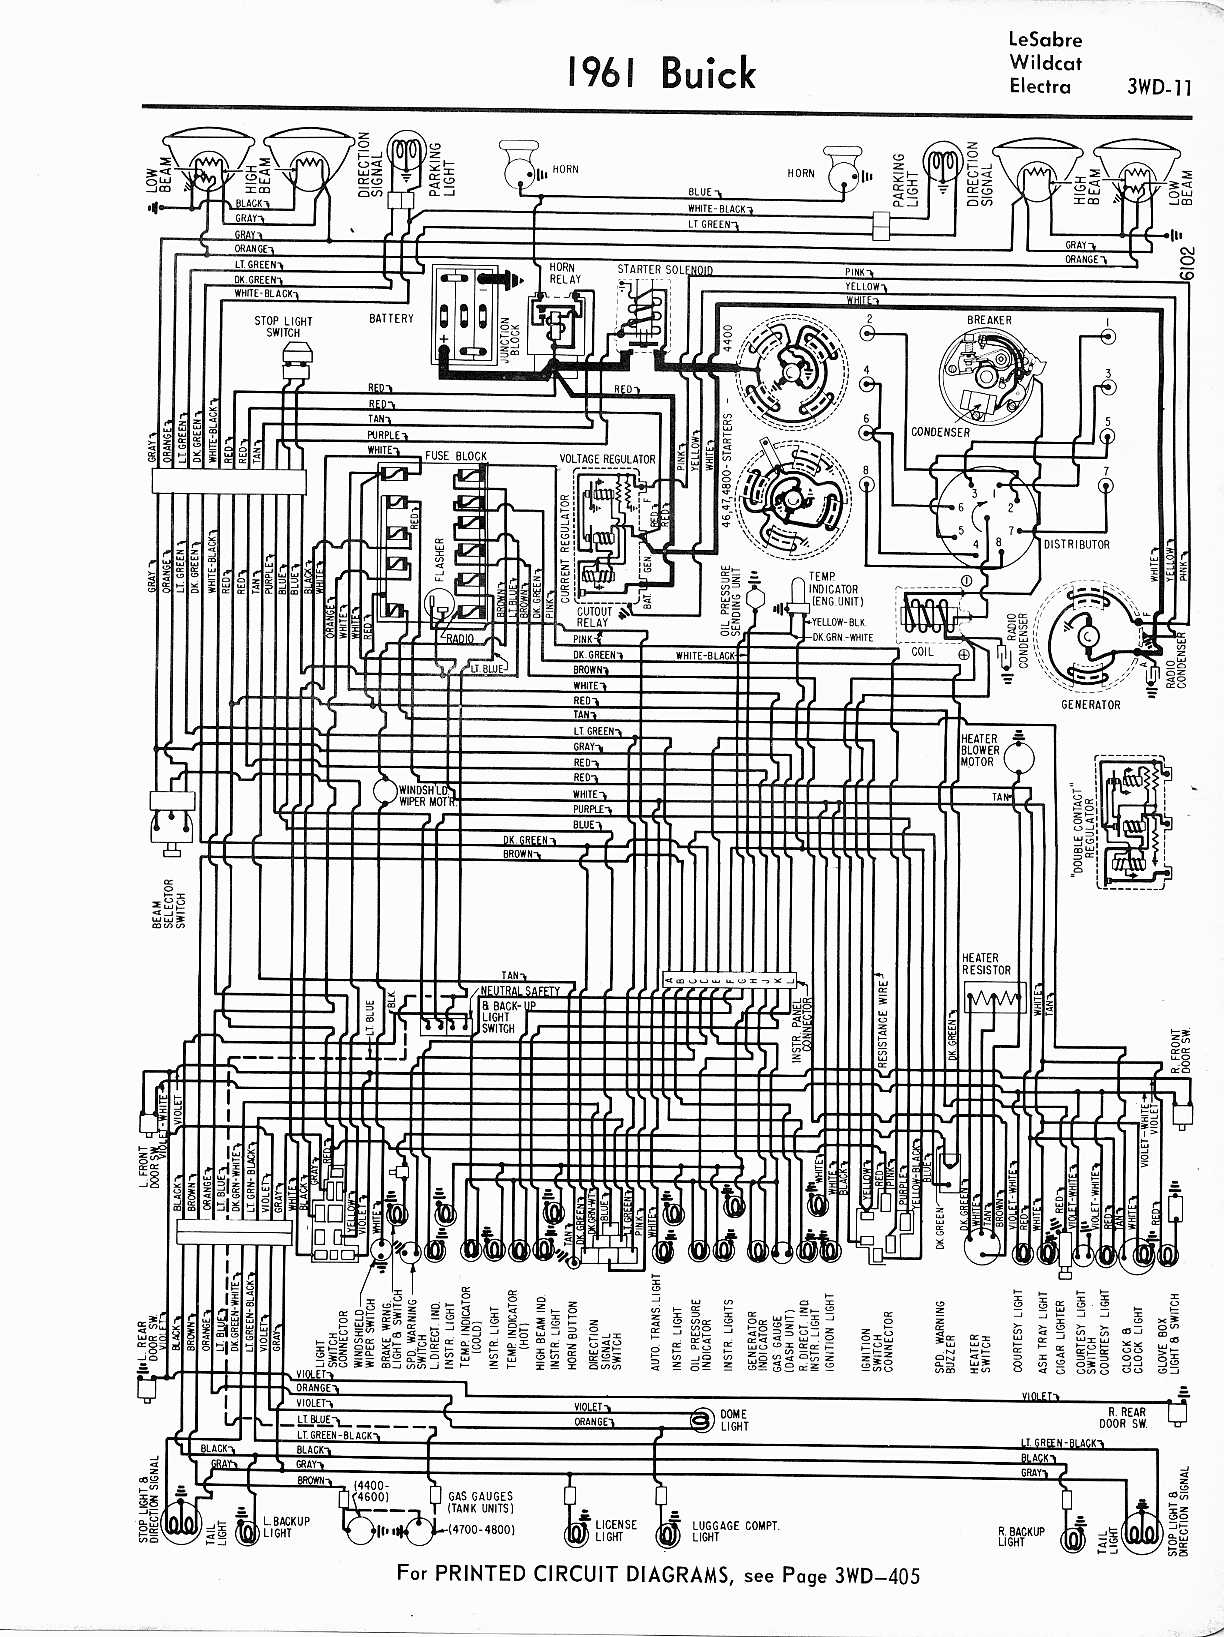 MWireBuic65_3WD 011 1965 buick riviera wiring diagram 1967 wiring diagram simonand 1972 Buick Skylark at reclaimingppi.co